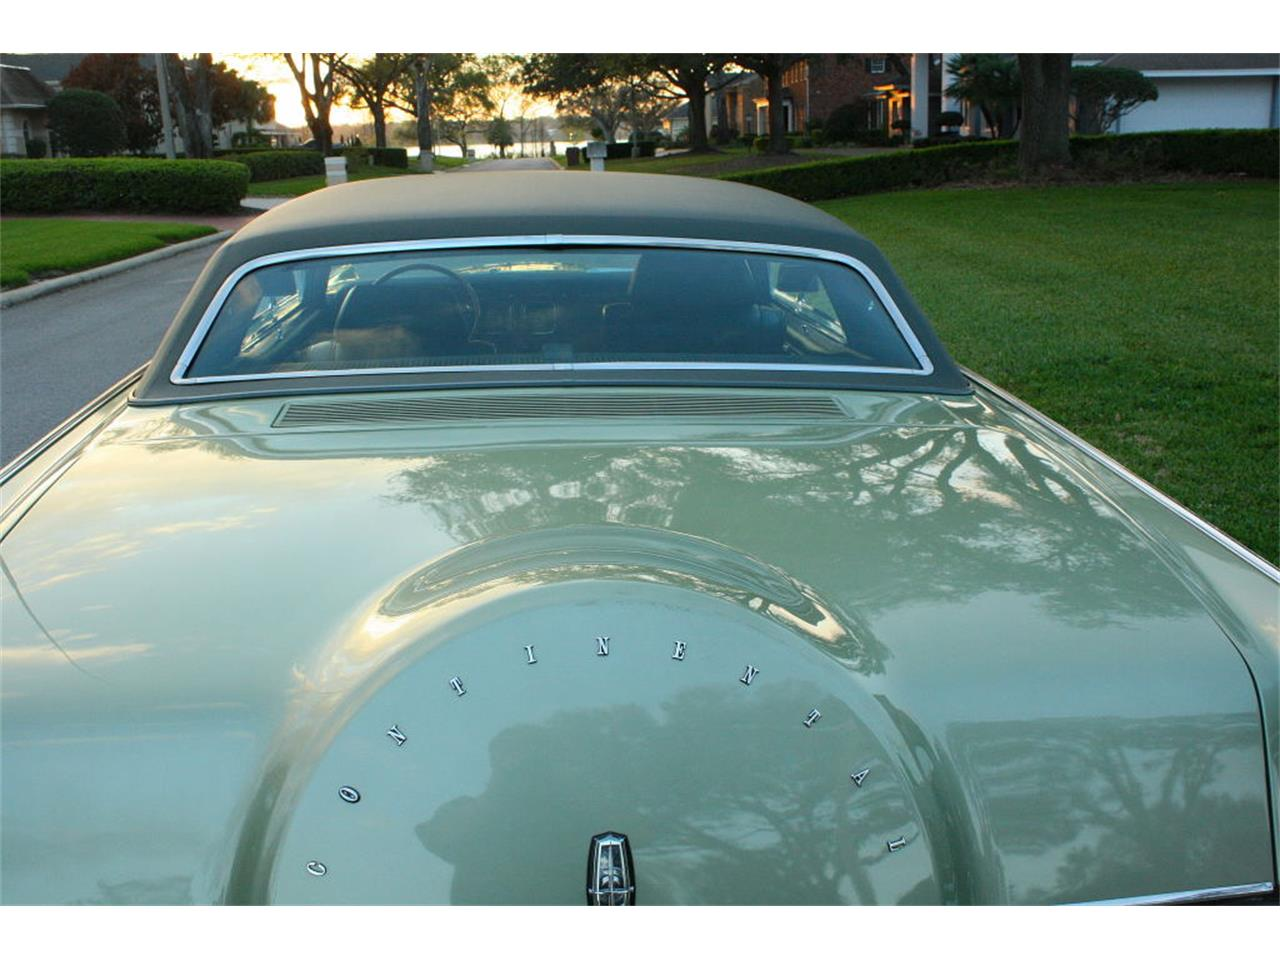 Large Picture of 1969 Lincoln Continental Mark III located in Florida - $24,500.00 Offered by MJC Classic Cars - OPDW